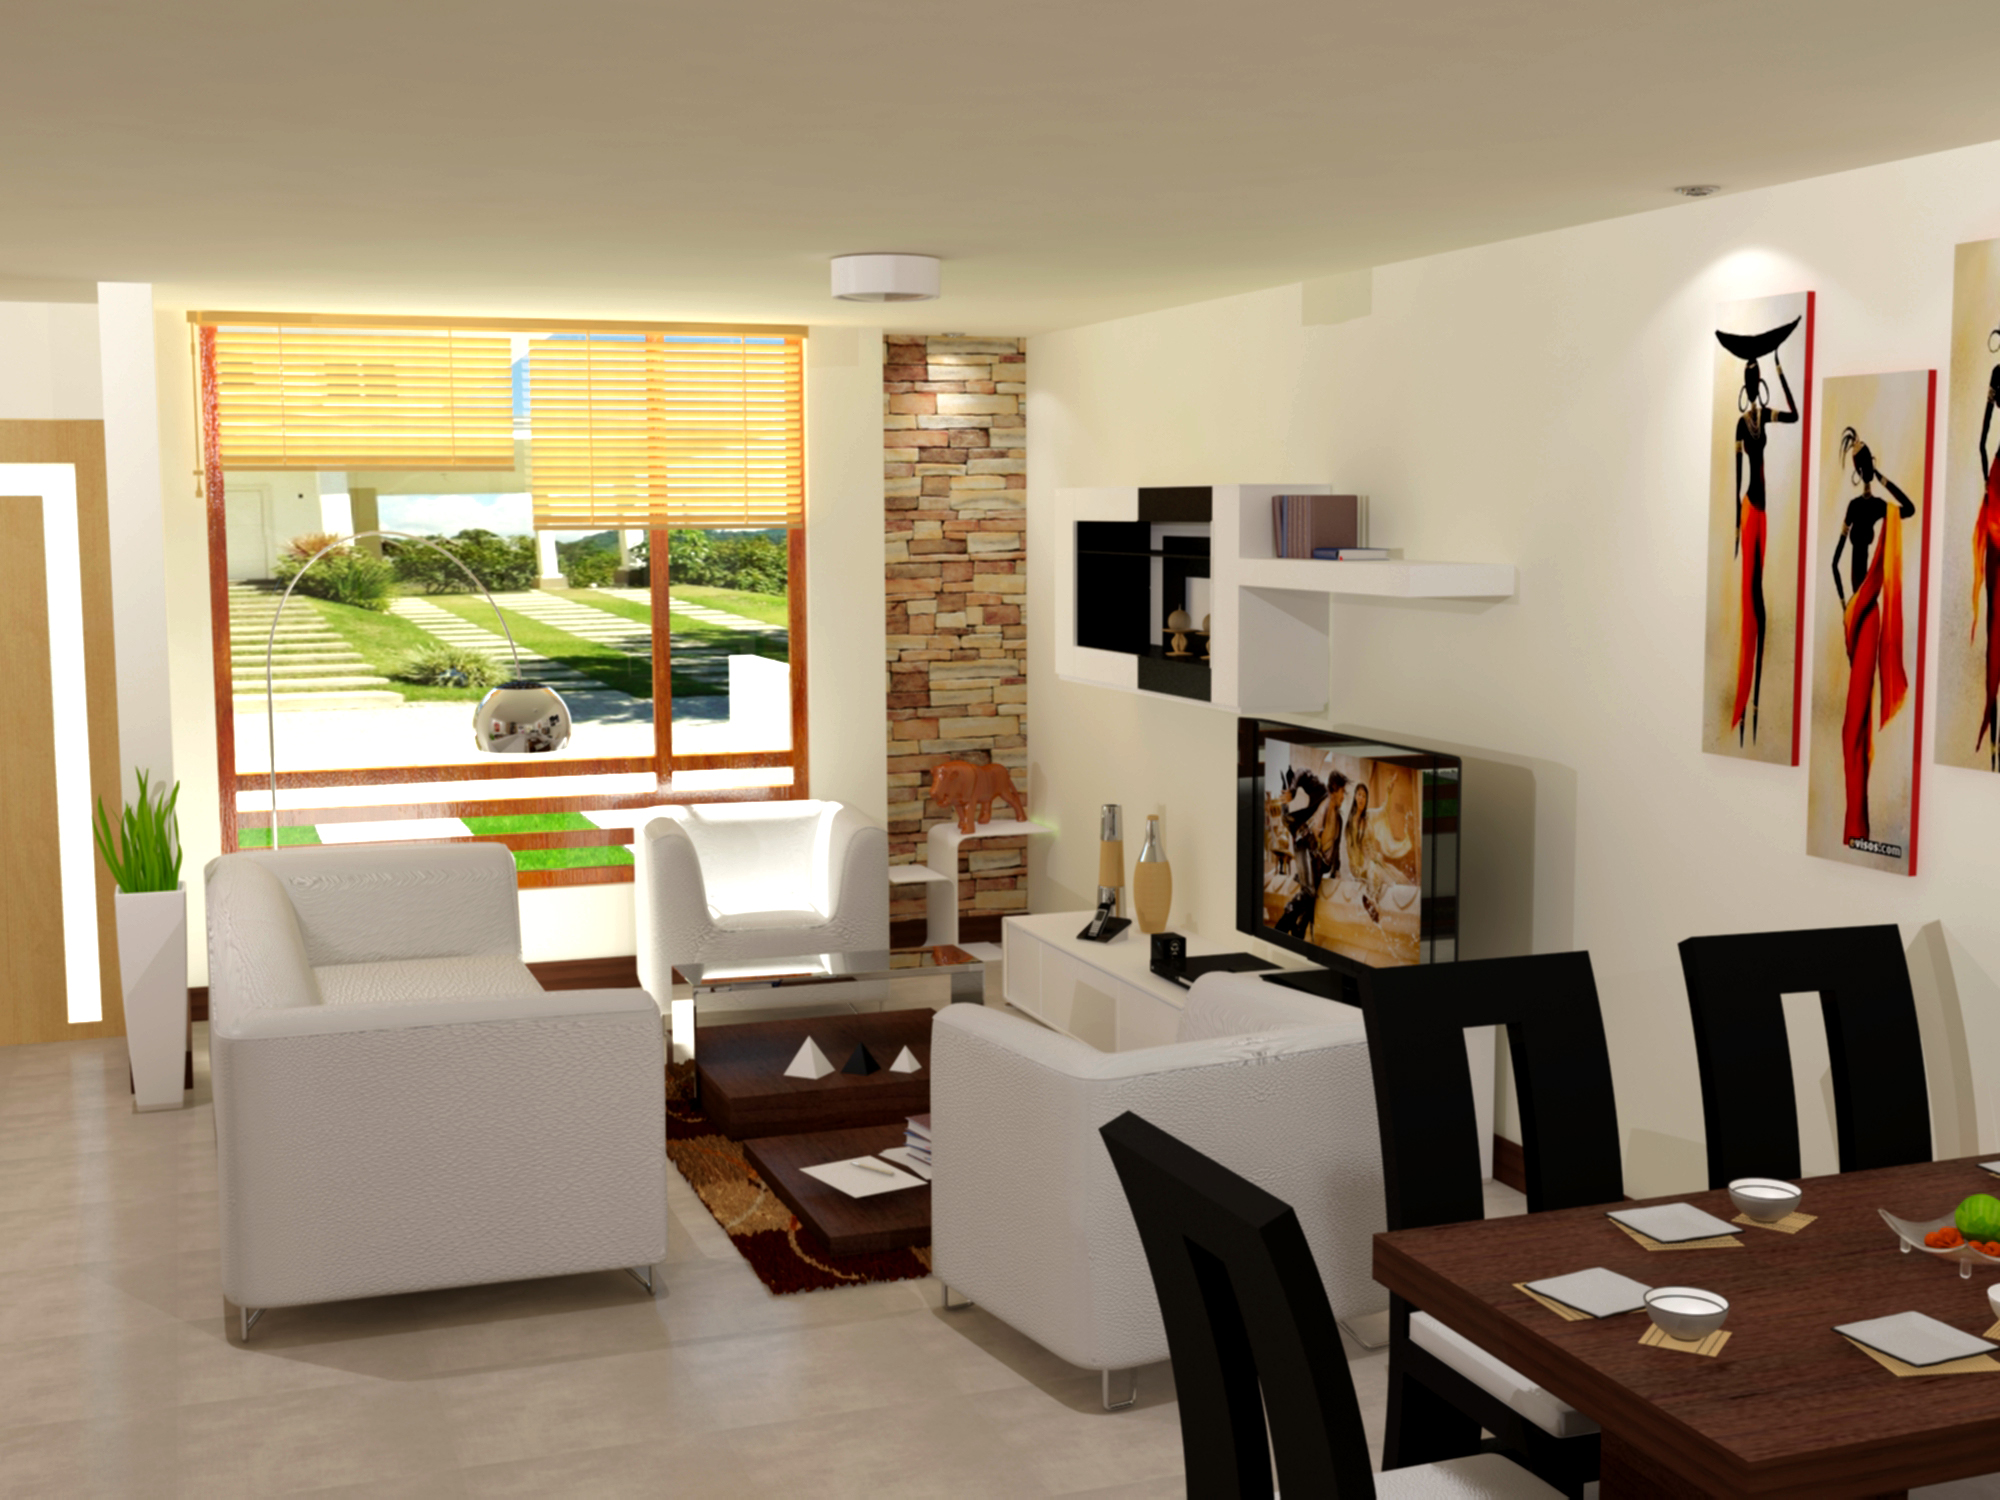 Como decorar una casa innovadoras ideas para ti for Casas modernas interiores decoracion